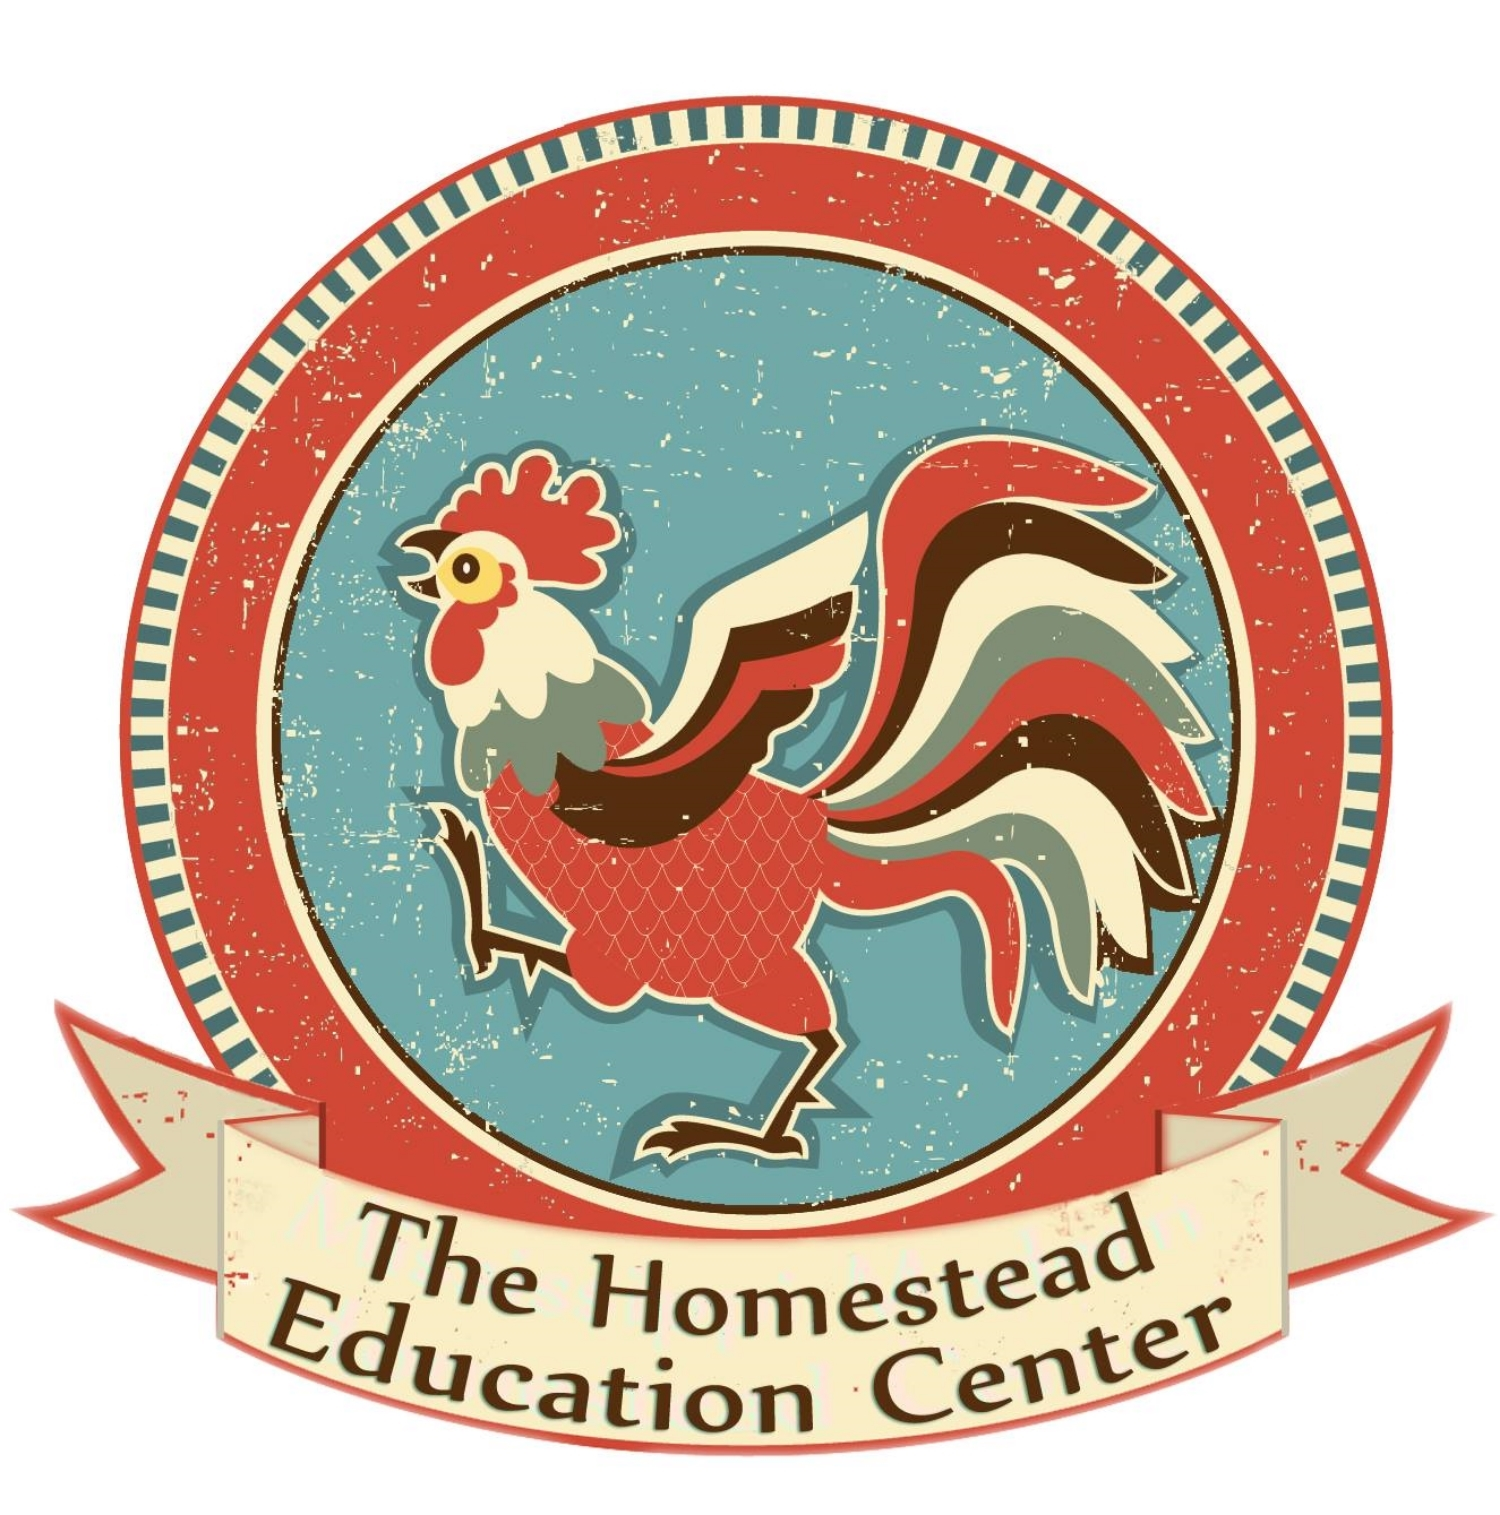 The Homestead Education Center